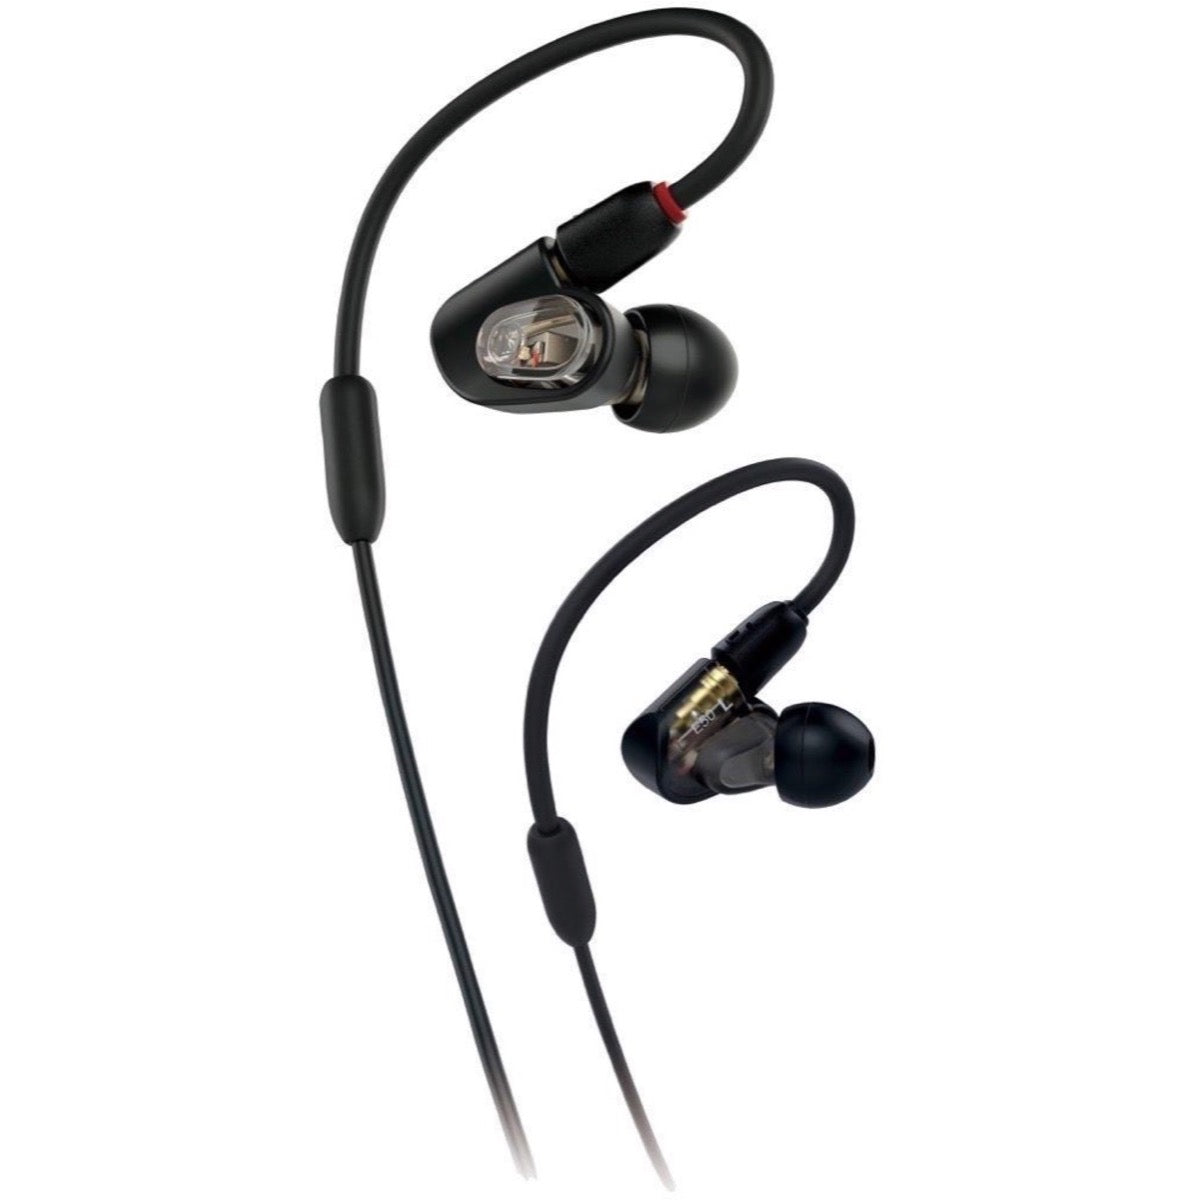 Audio-Technica ATH-E50 Professional In-Ear Monitor